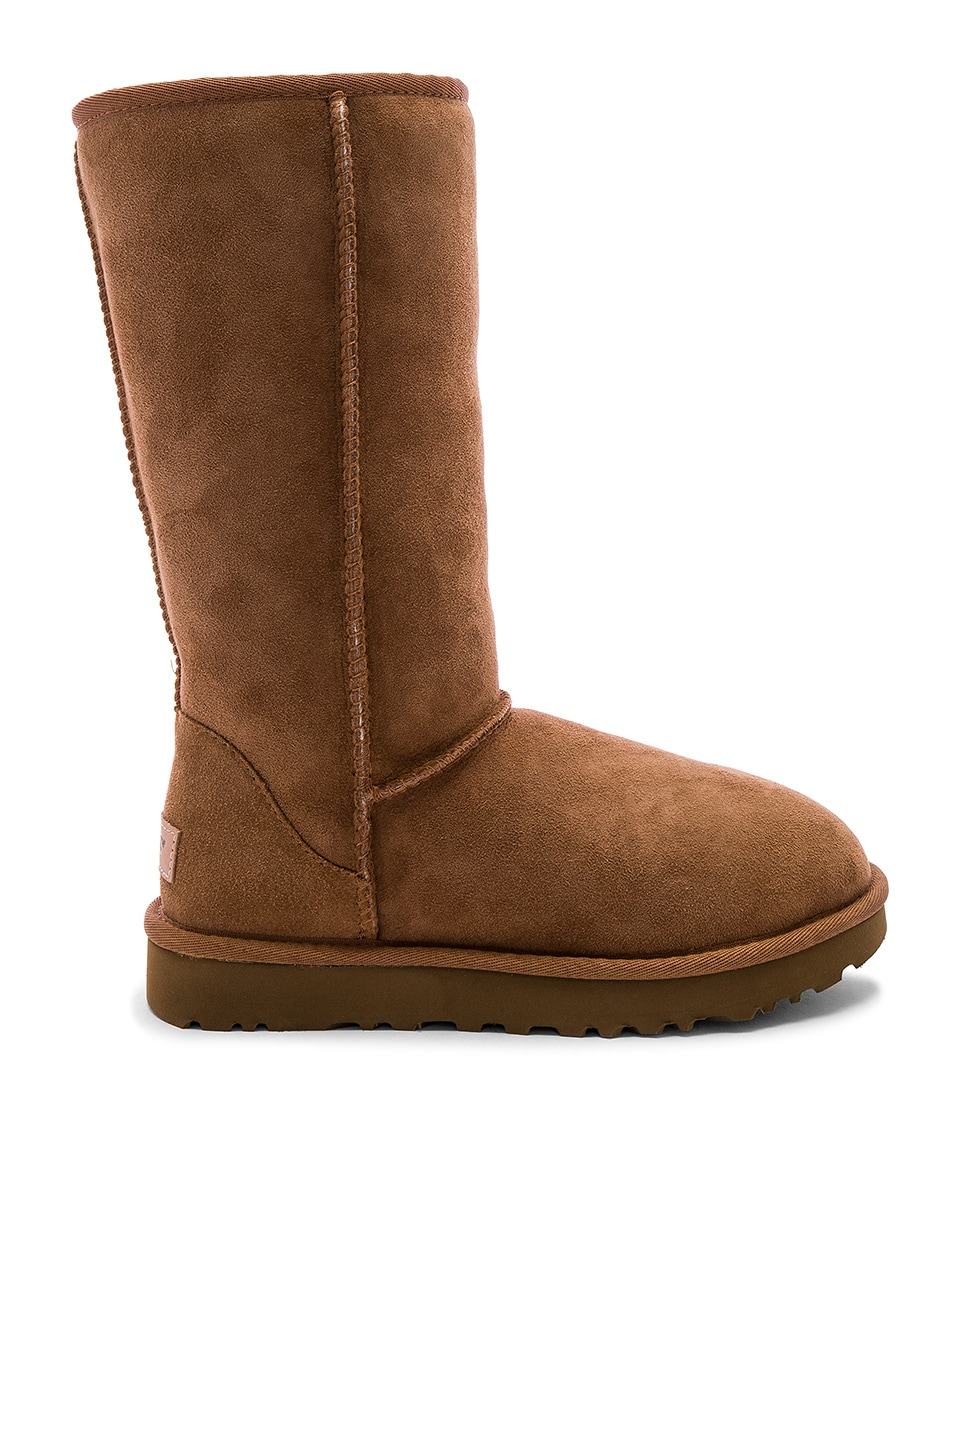 UGG Classic Tall II Boot in Chestnut